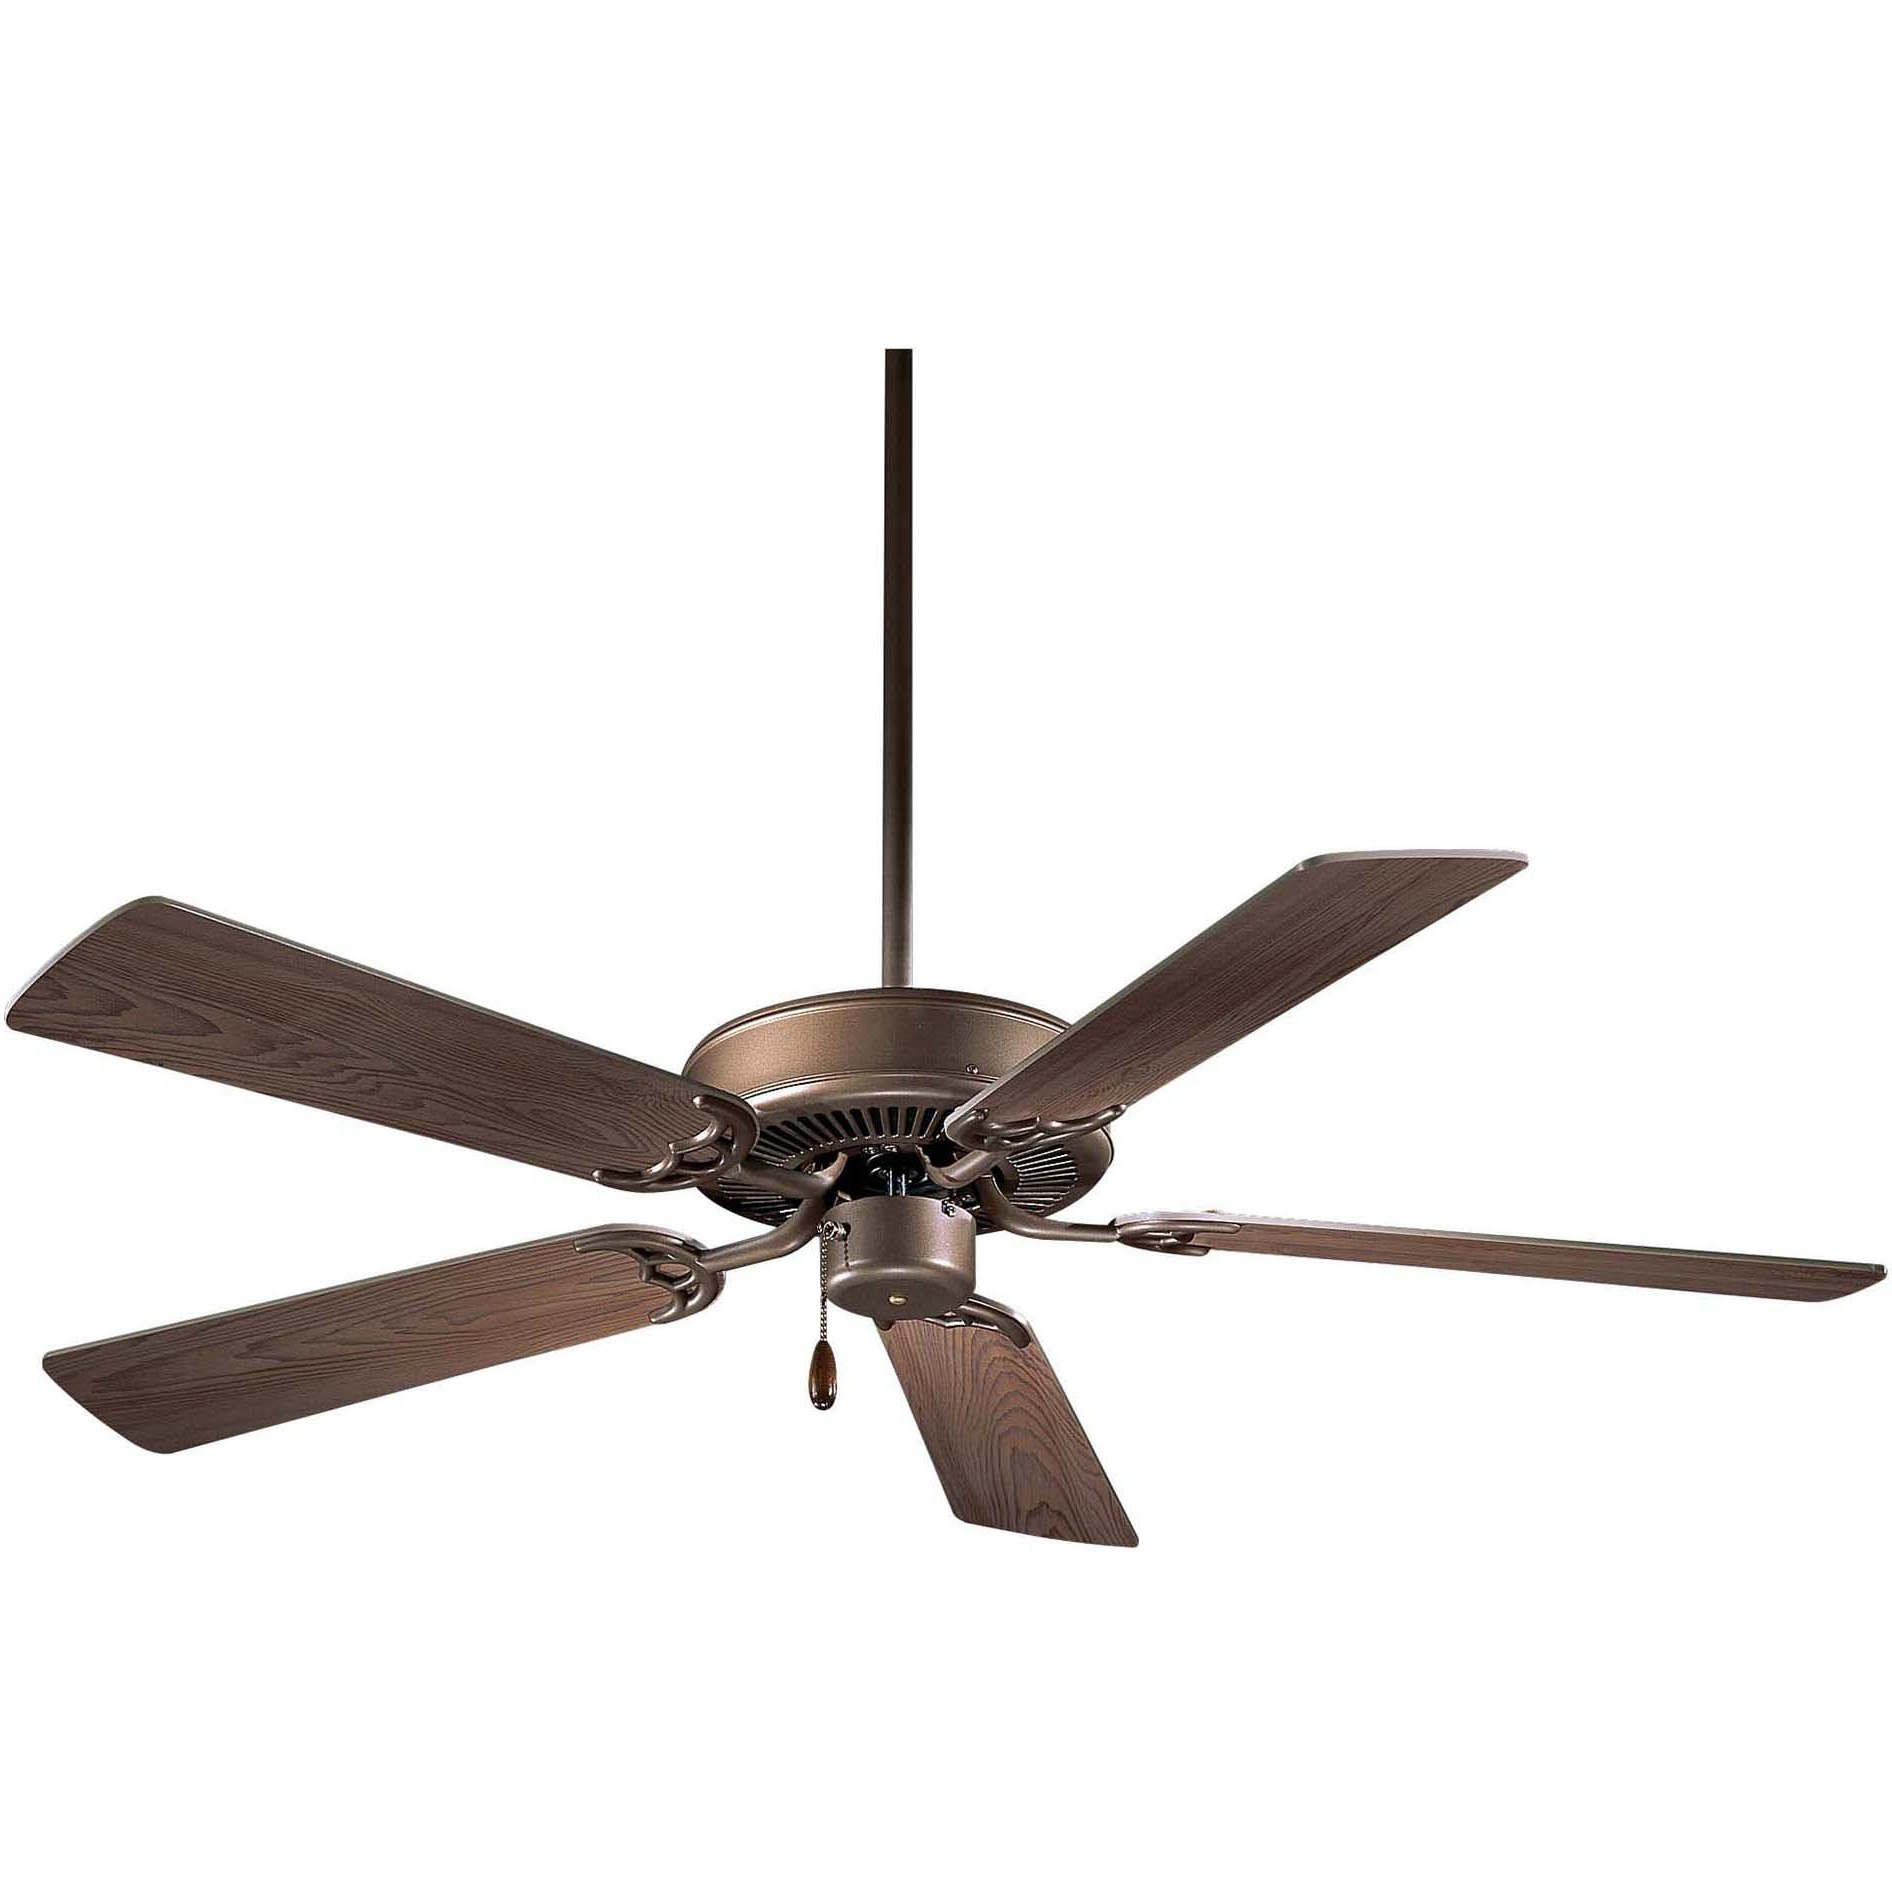 Trendy Contractor 5 Blade Ceiling Fans Throughout 42 Contractor 5 Blade Ceiling Fan (View 20 of 20)